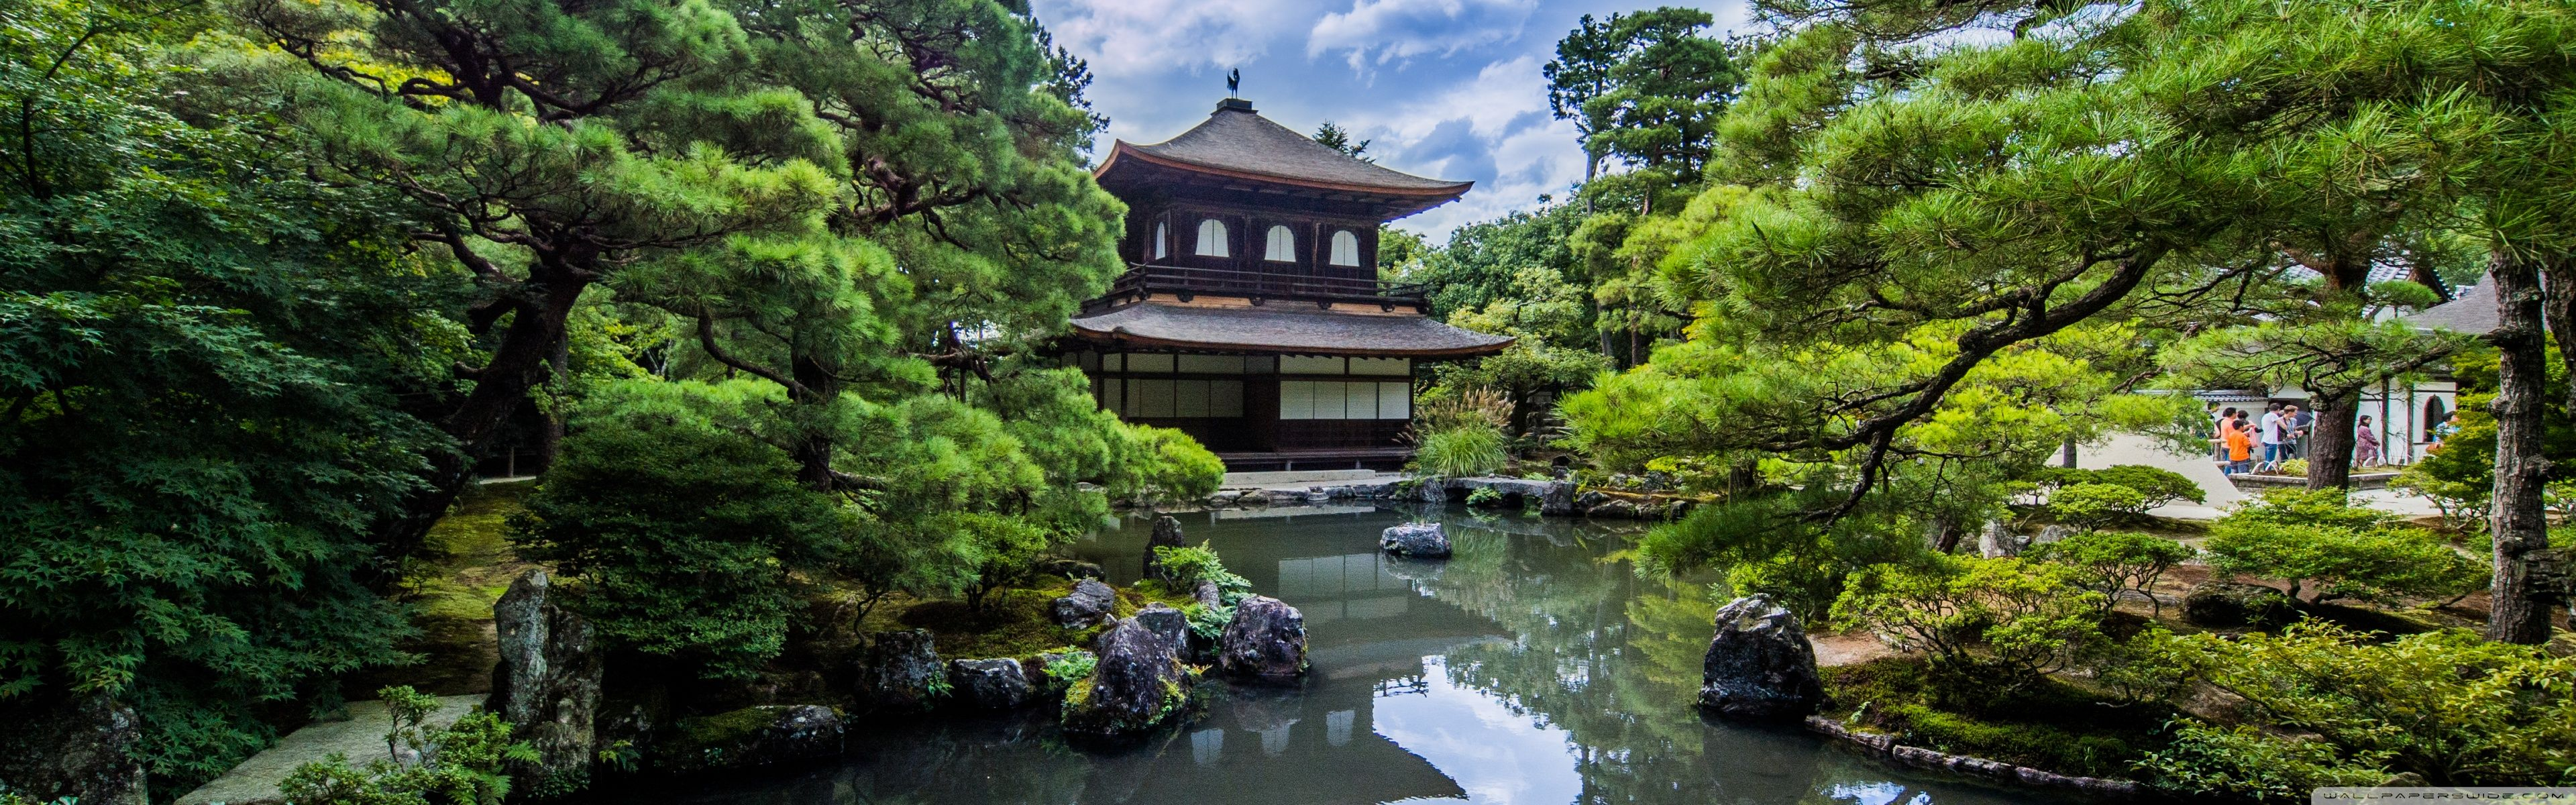 Japanese Garden Wallpapers: Japanese Dual Screen Wallpapers